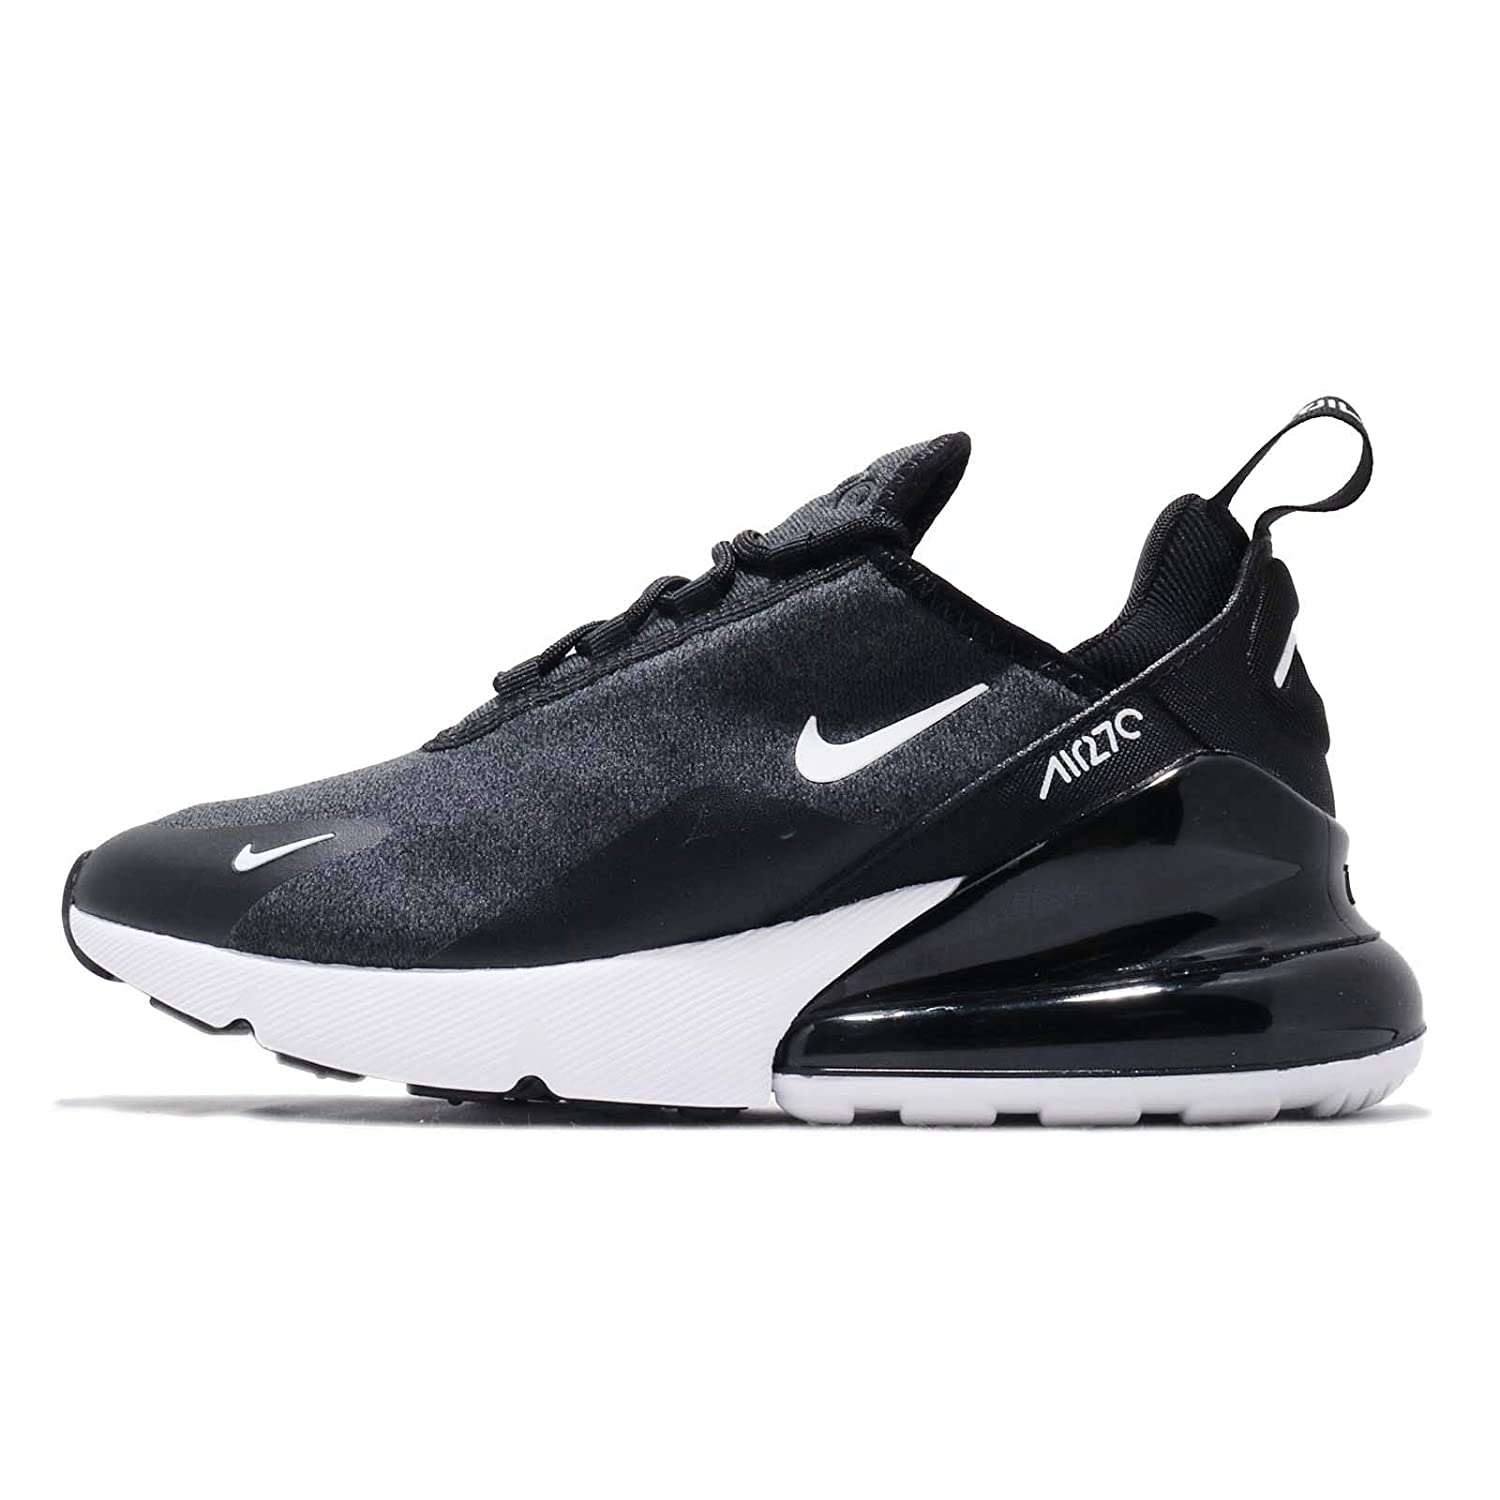 芸能人愛用 [ナイキ] エア マックス 270 270 SE レディース cm|BLACK ランニング シューズ SE Air Max 270 SE BV6669-031 [並行輸入品] B07LBJKW9Z BLACK HEATHER/WHITE-BLACK 22.5 cm 22.5 cm|BLACK HEATHER/WHITE-BLACK, CHEROKEE:af8dd71a --- sabinosports.com